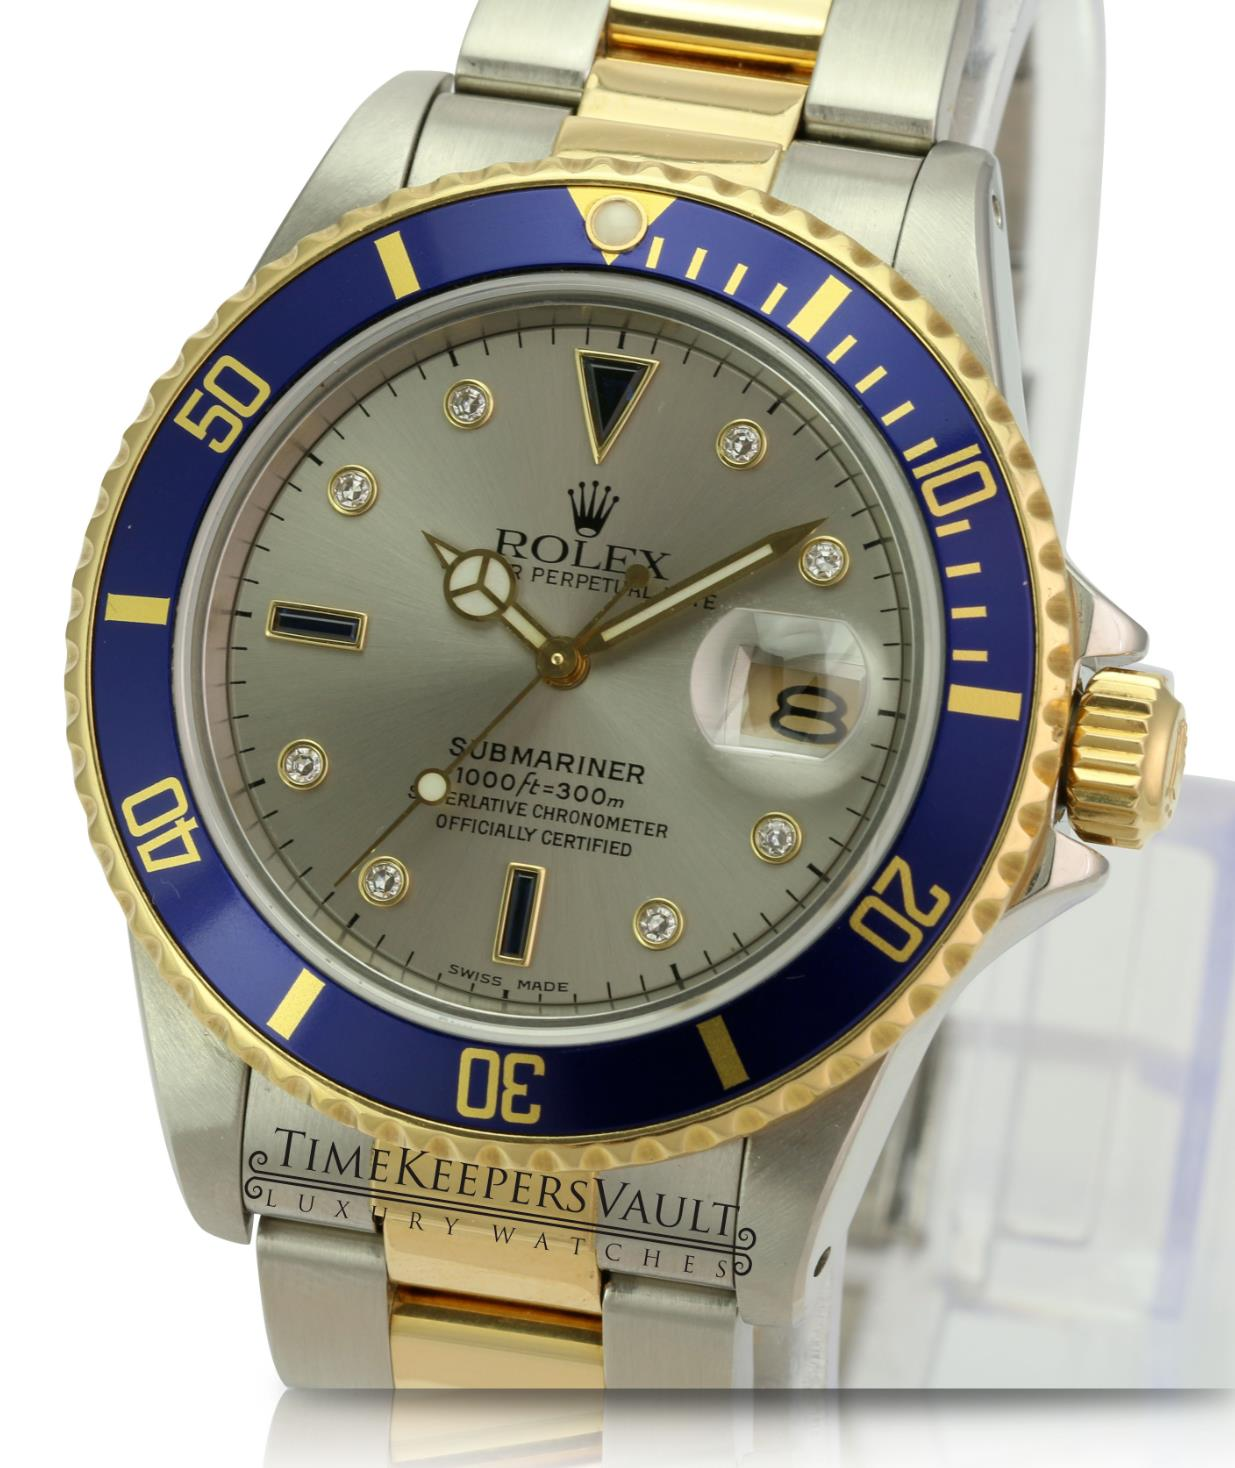 Factory Rolex  Men's 40mm Submariner 16613 18K Gold & Steel Silver Serti Dial - Time Keepers Vault